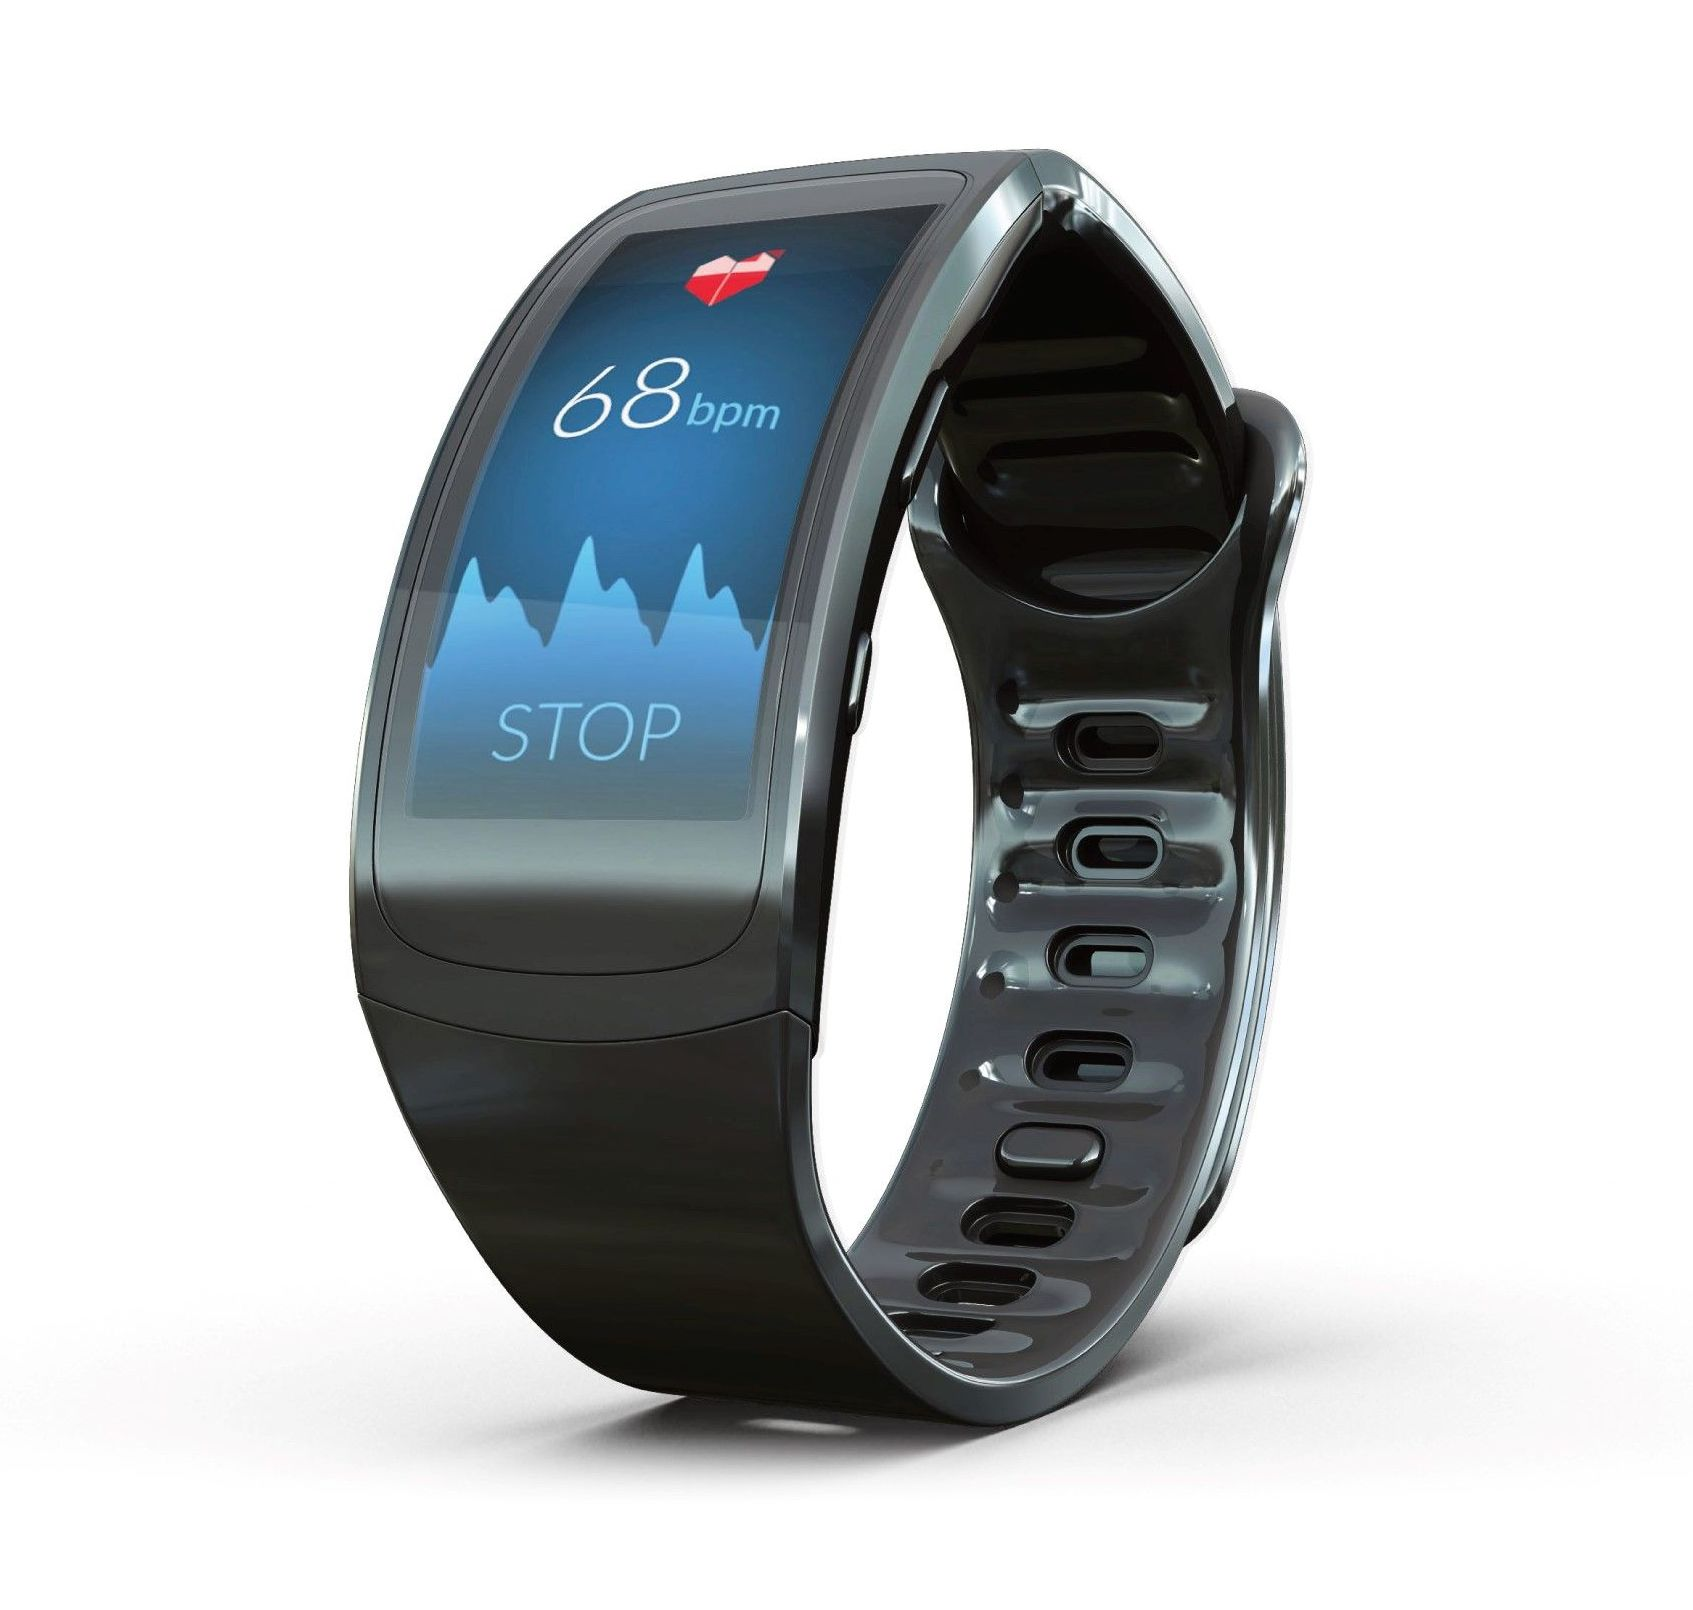 Atrial fibrillation can be detected correctly by commercially available smartwatches using Preventicus application